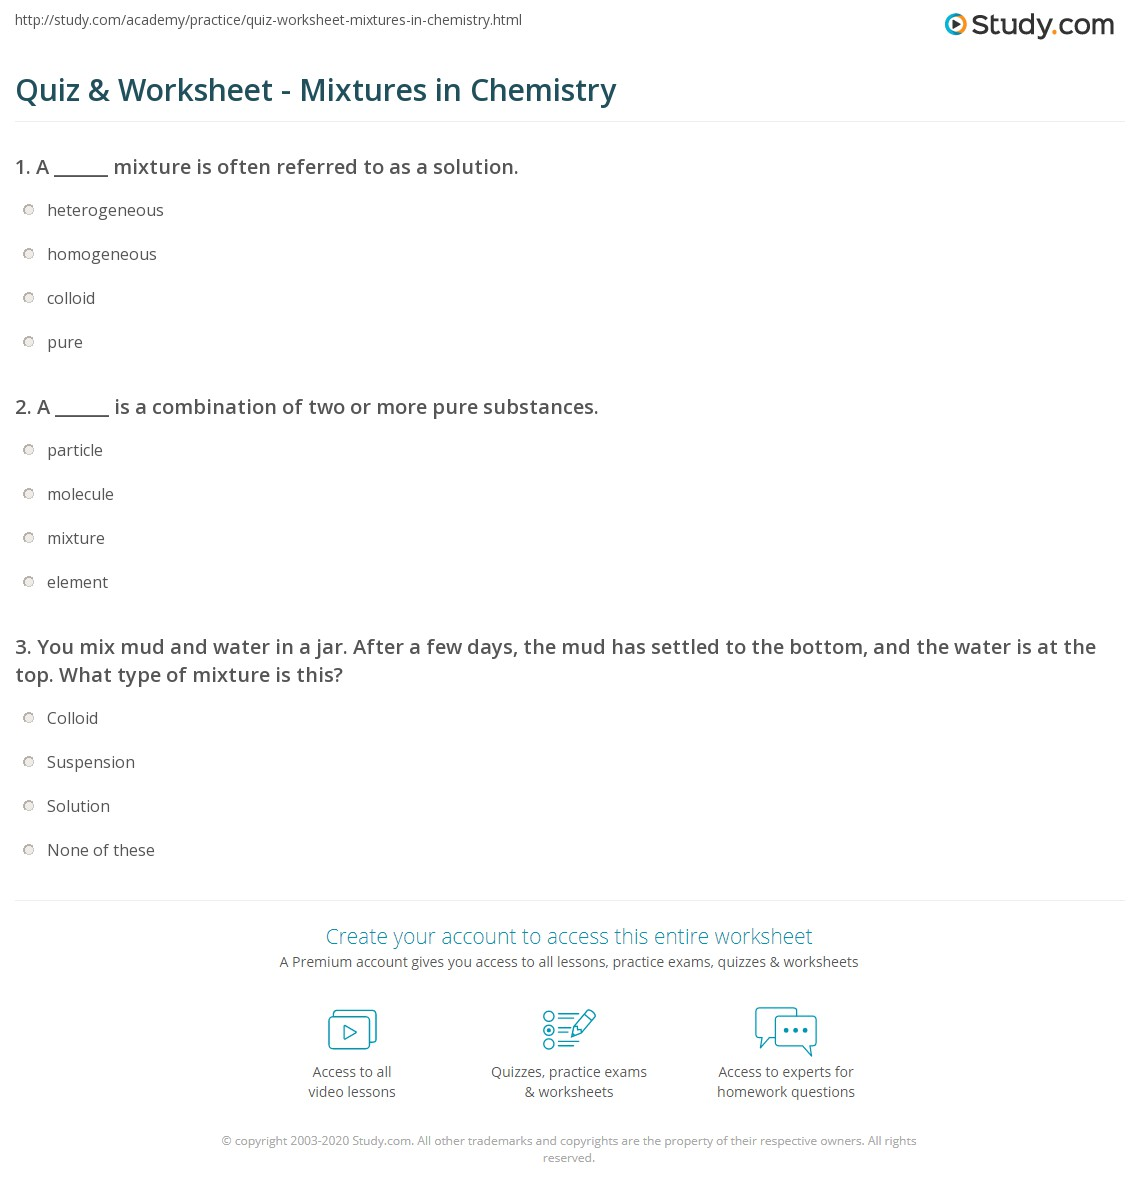 Quiz & Worksheet - Mixtures in Chemistry | Study.com